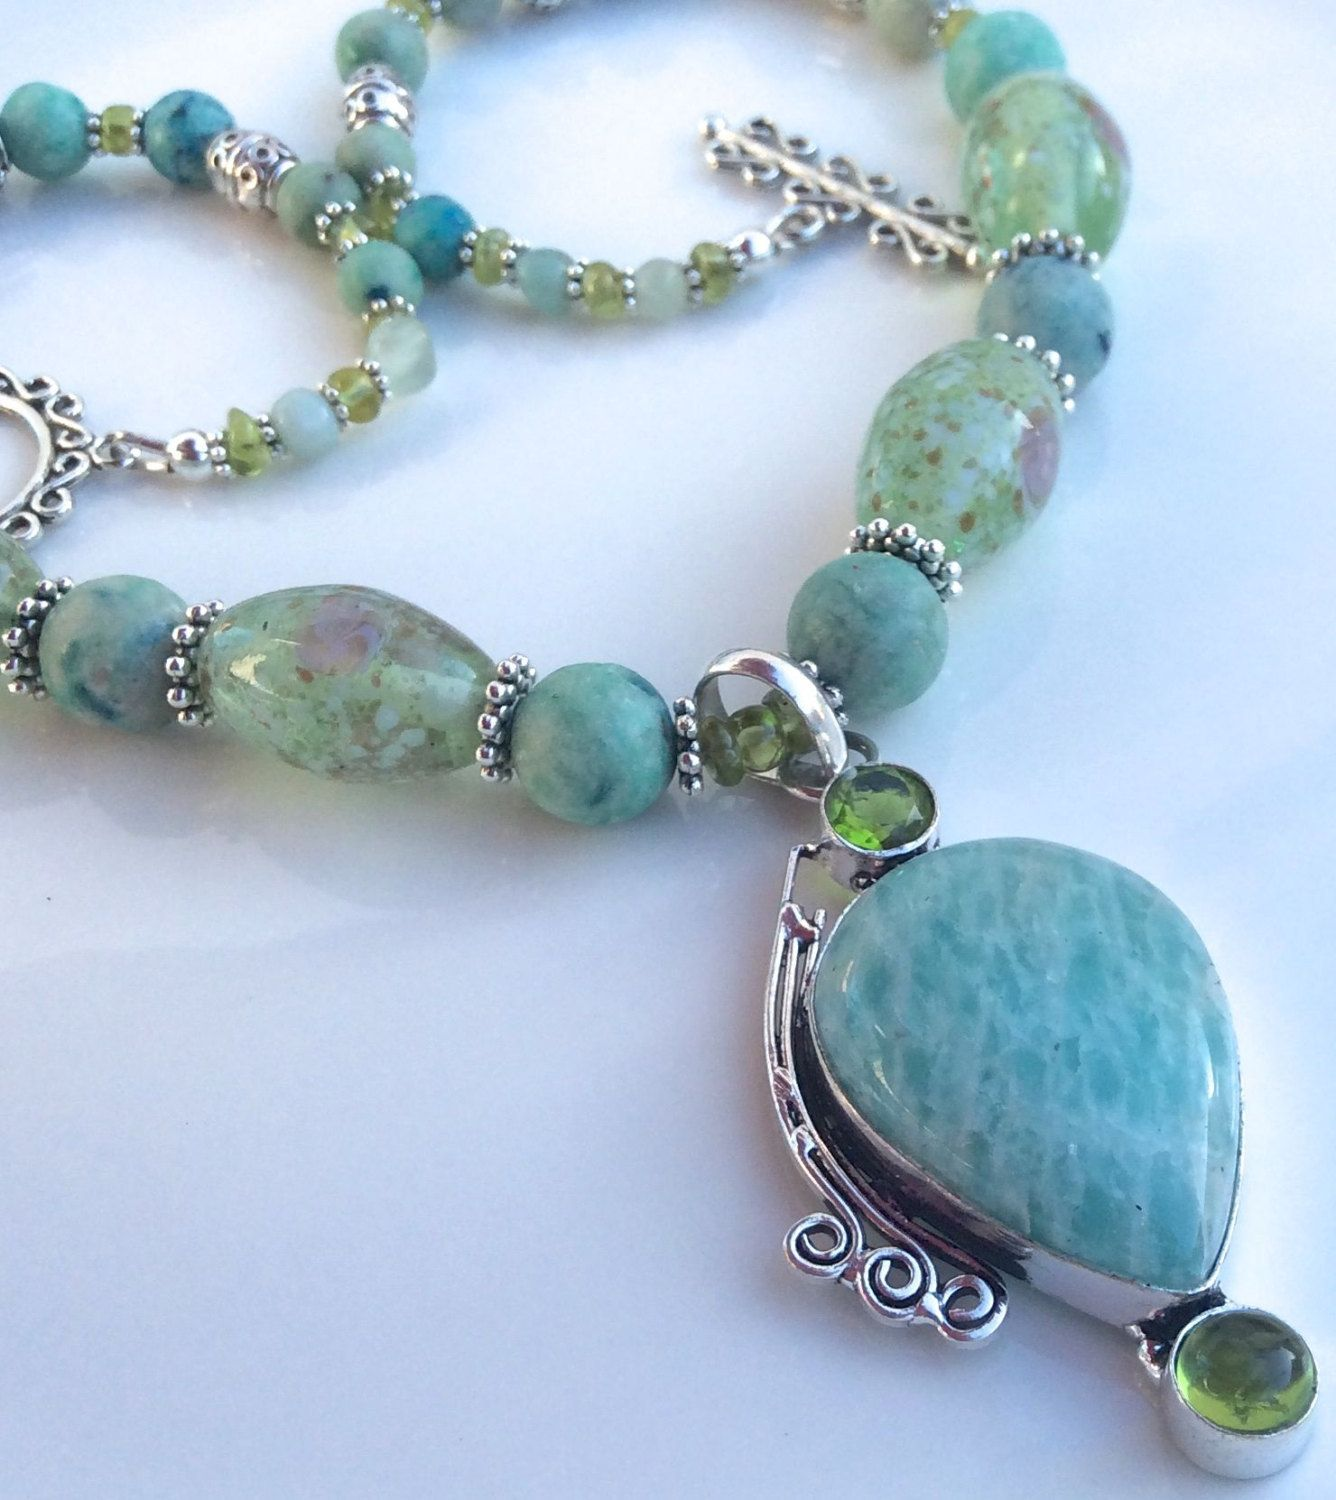 Amazonite and Peridot Pendant with Frosted Azurite and Peridot Necklace by BijouxJoaillier on Etsy - SOLD